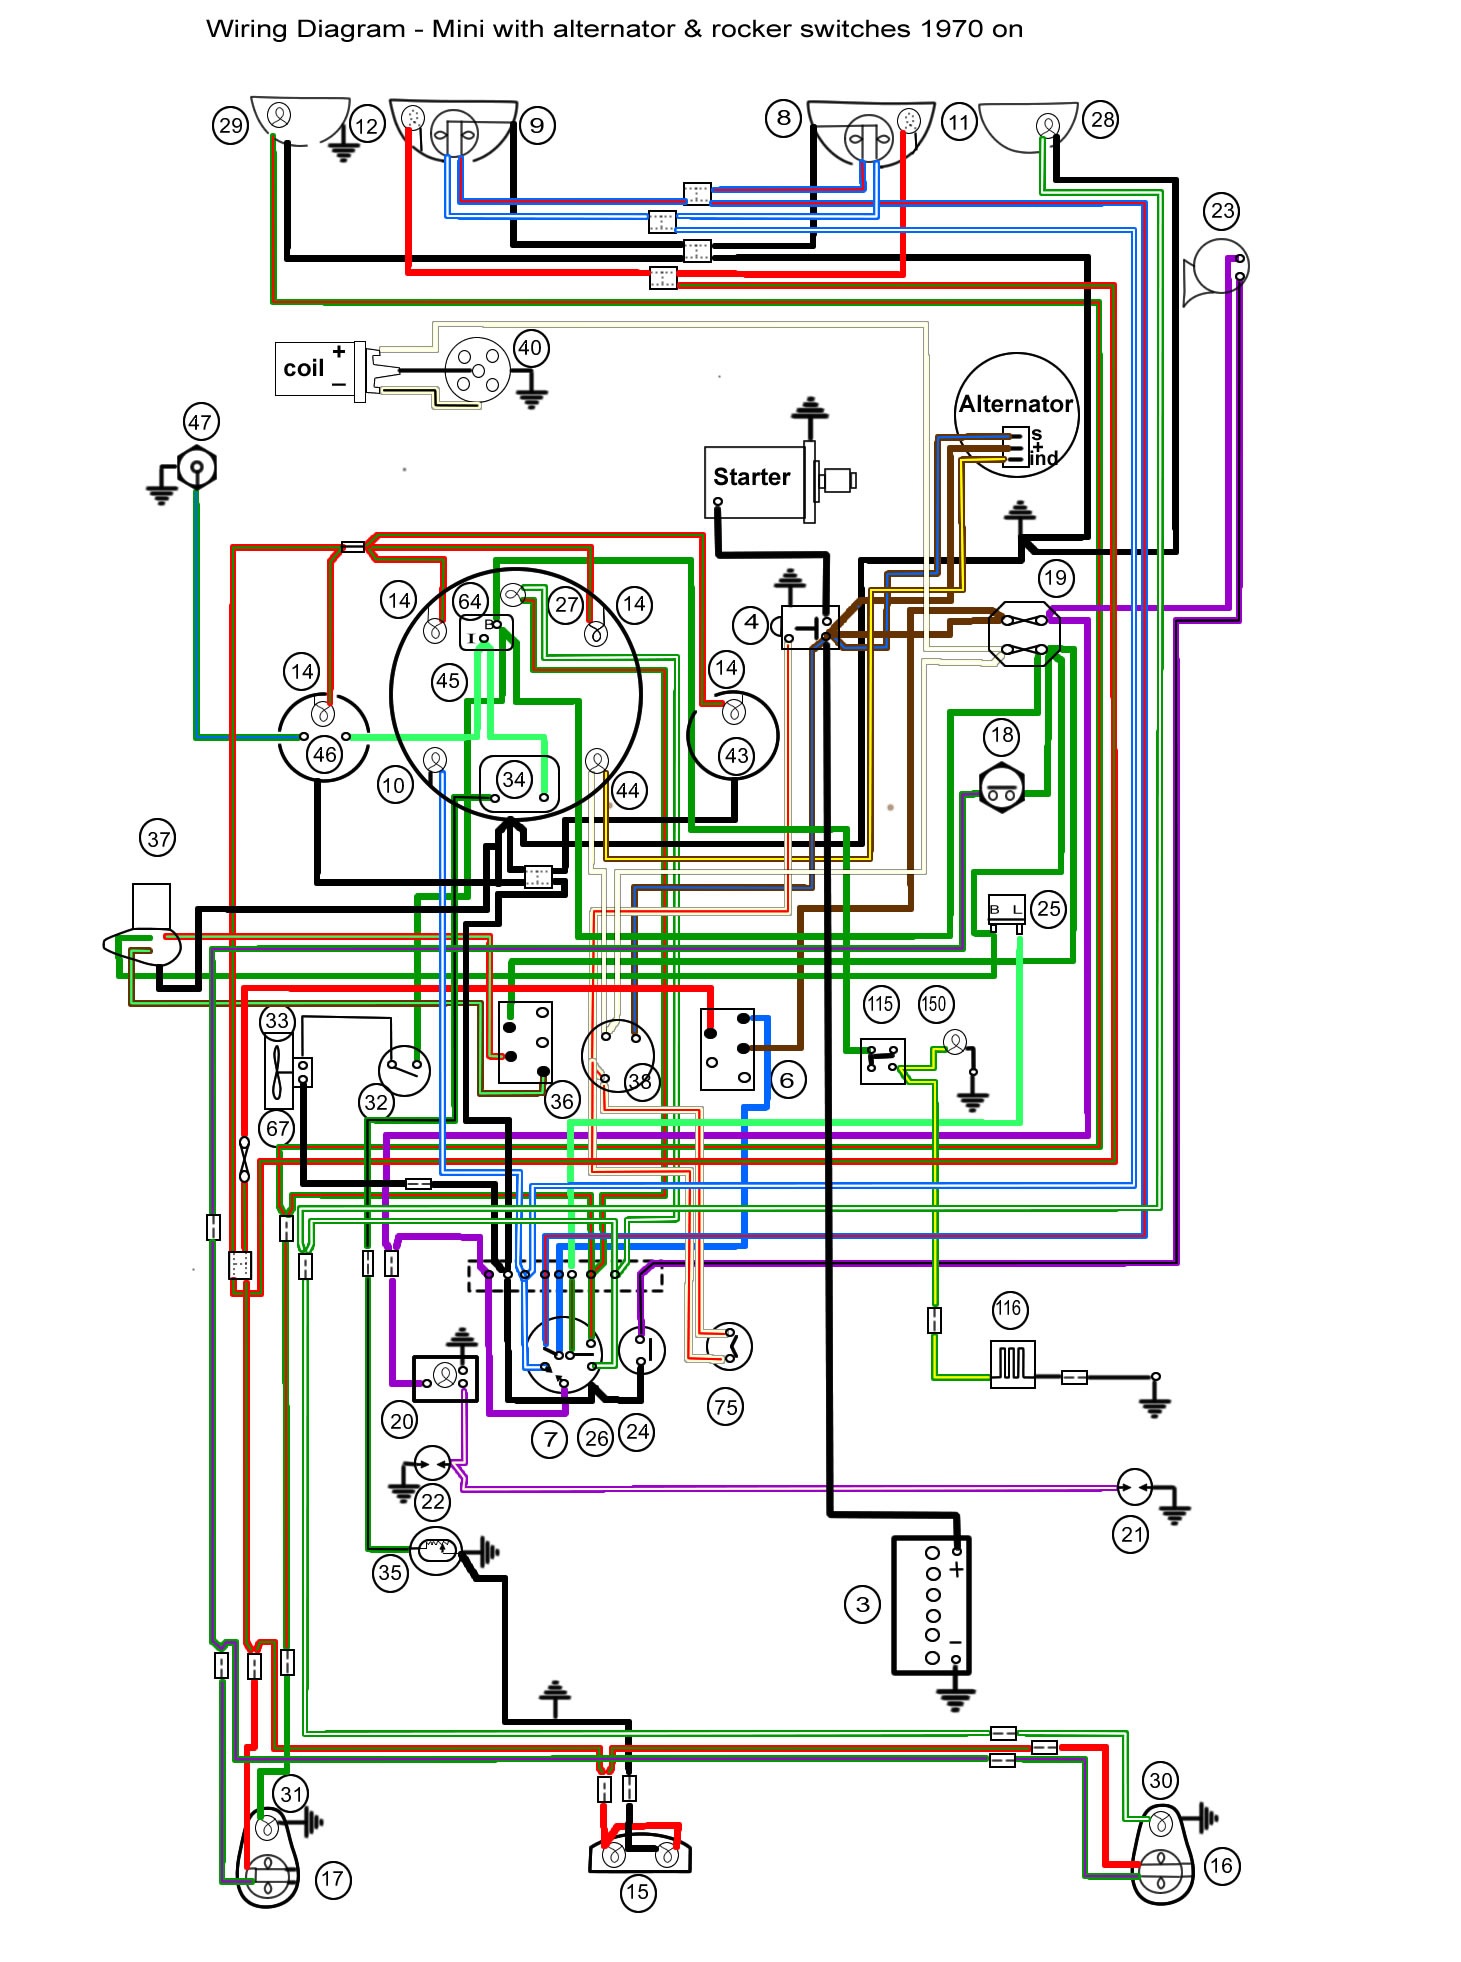 1990 mini cooper wiring diagram minifinity the classic mini forum and resource | • view ...